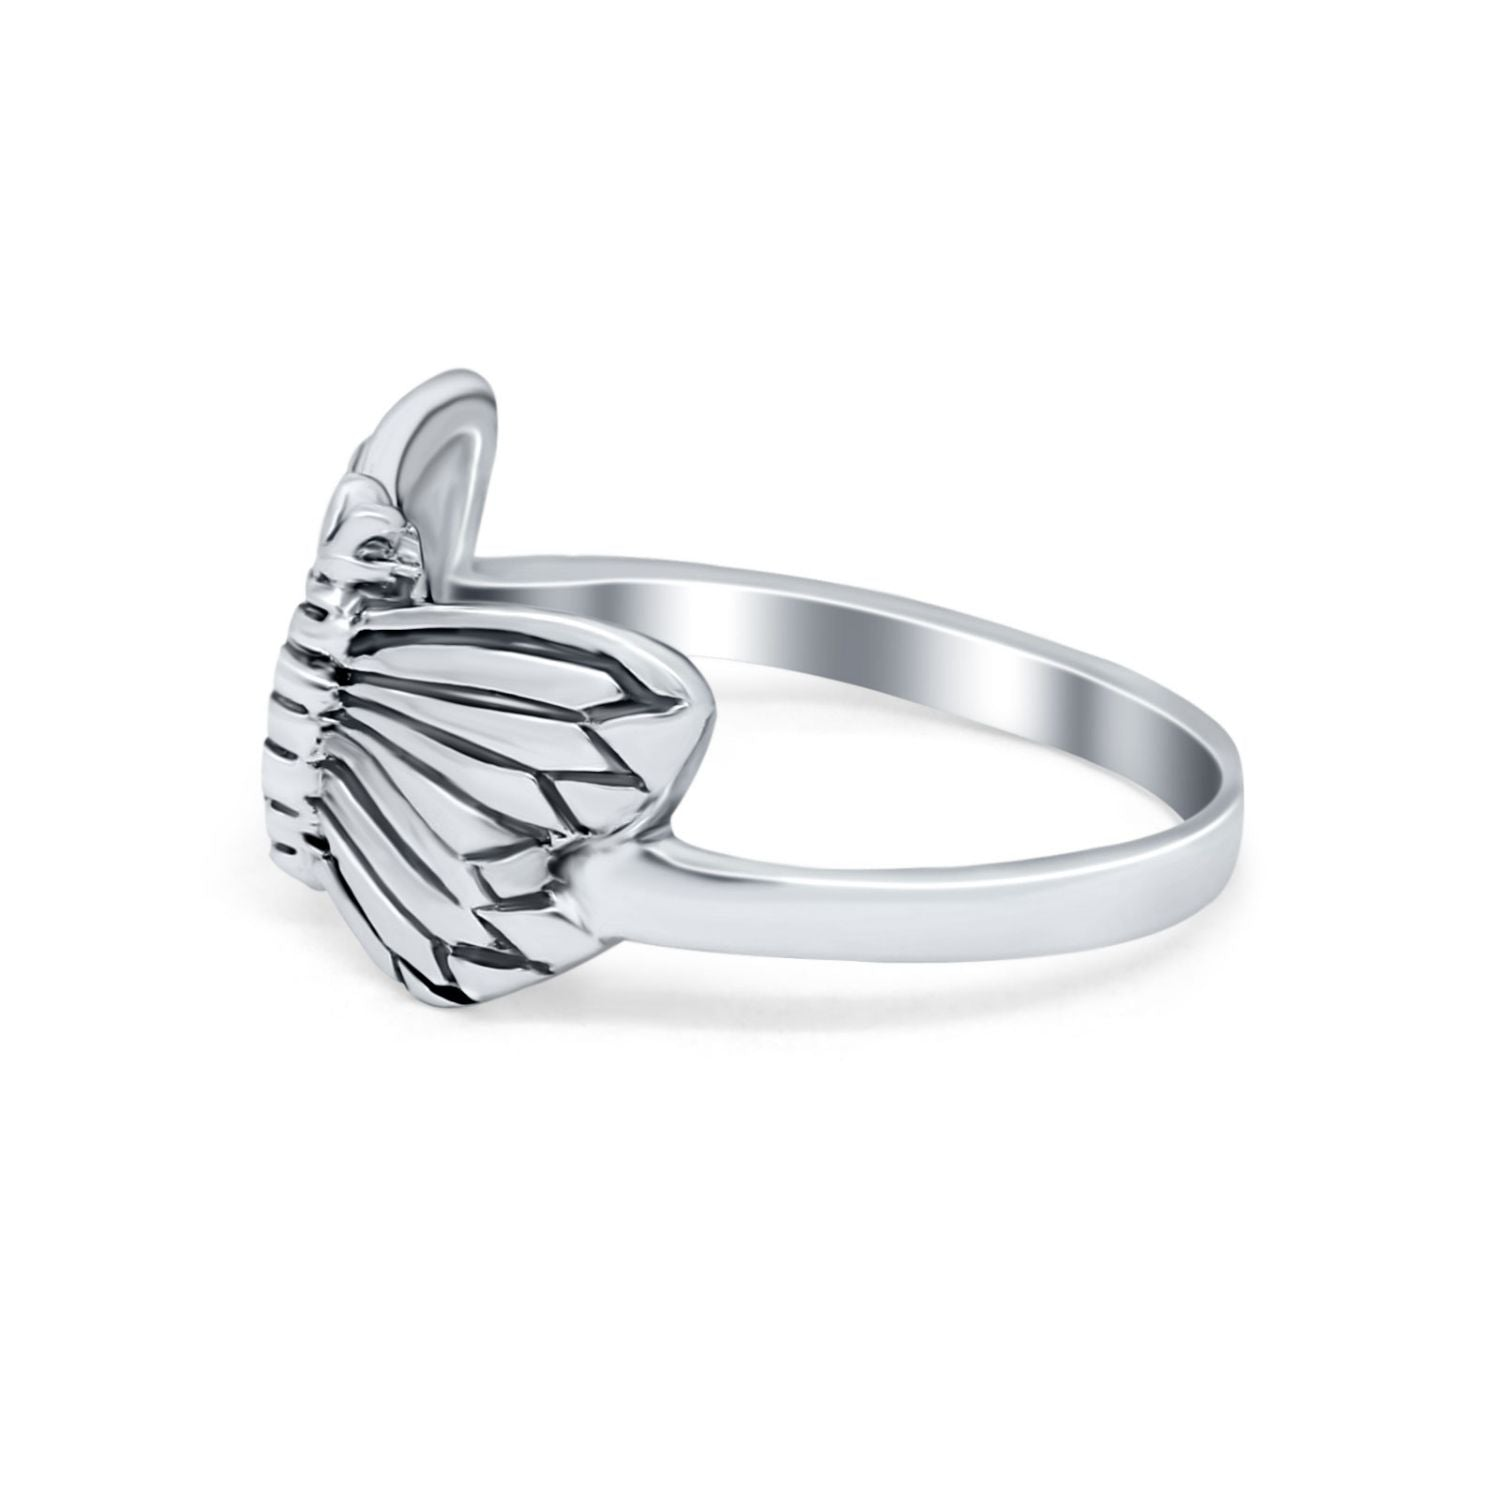 Sterling Silver Fashion Butterfly Ring Band Oxidized Round 925 Sterling Silver